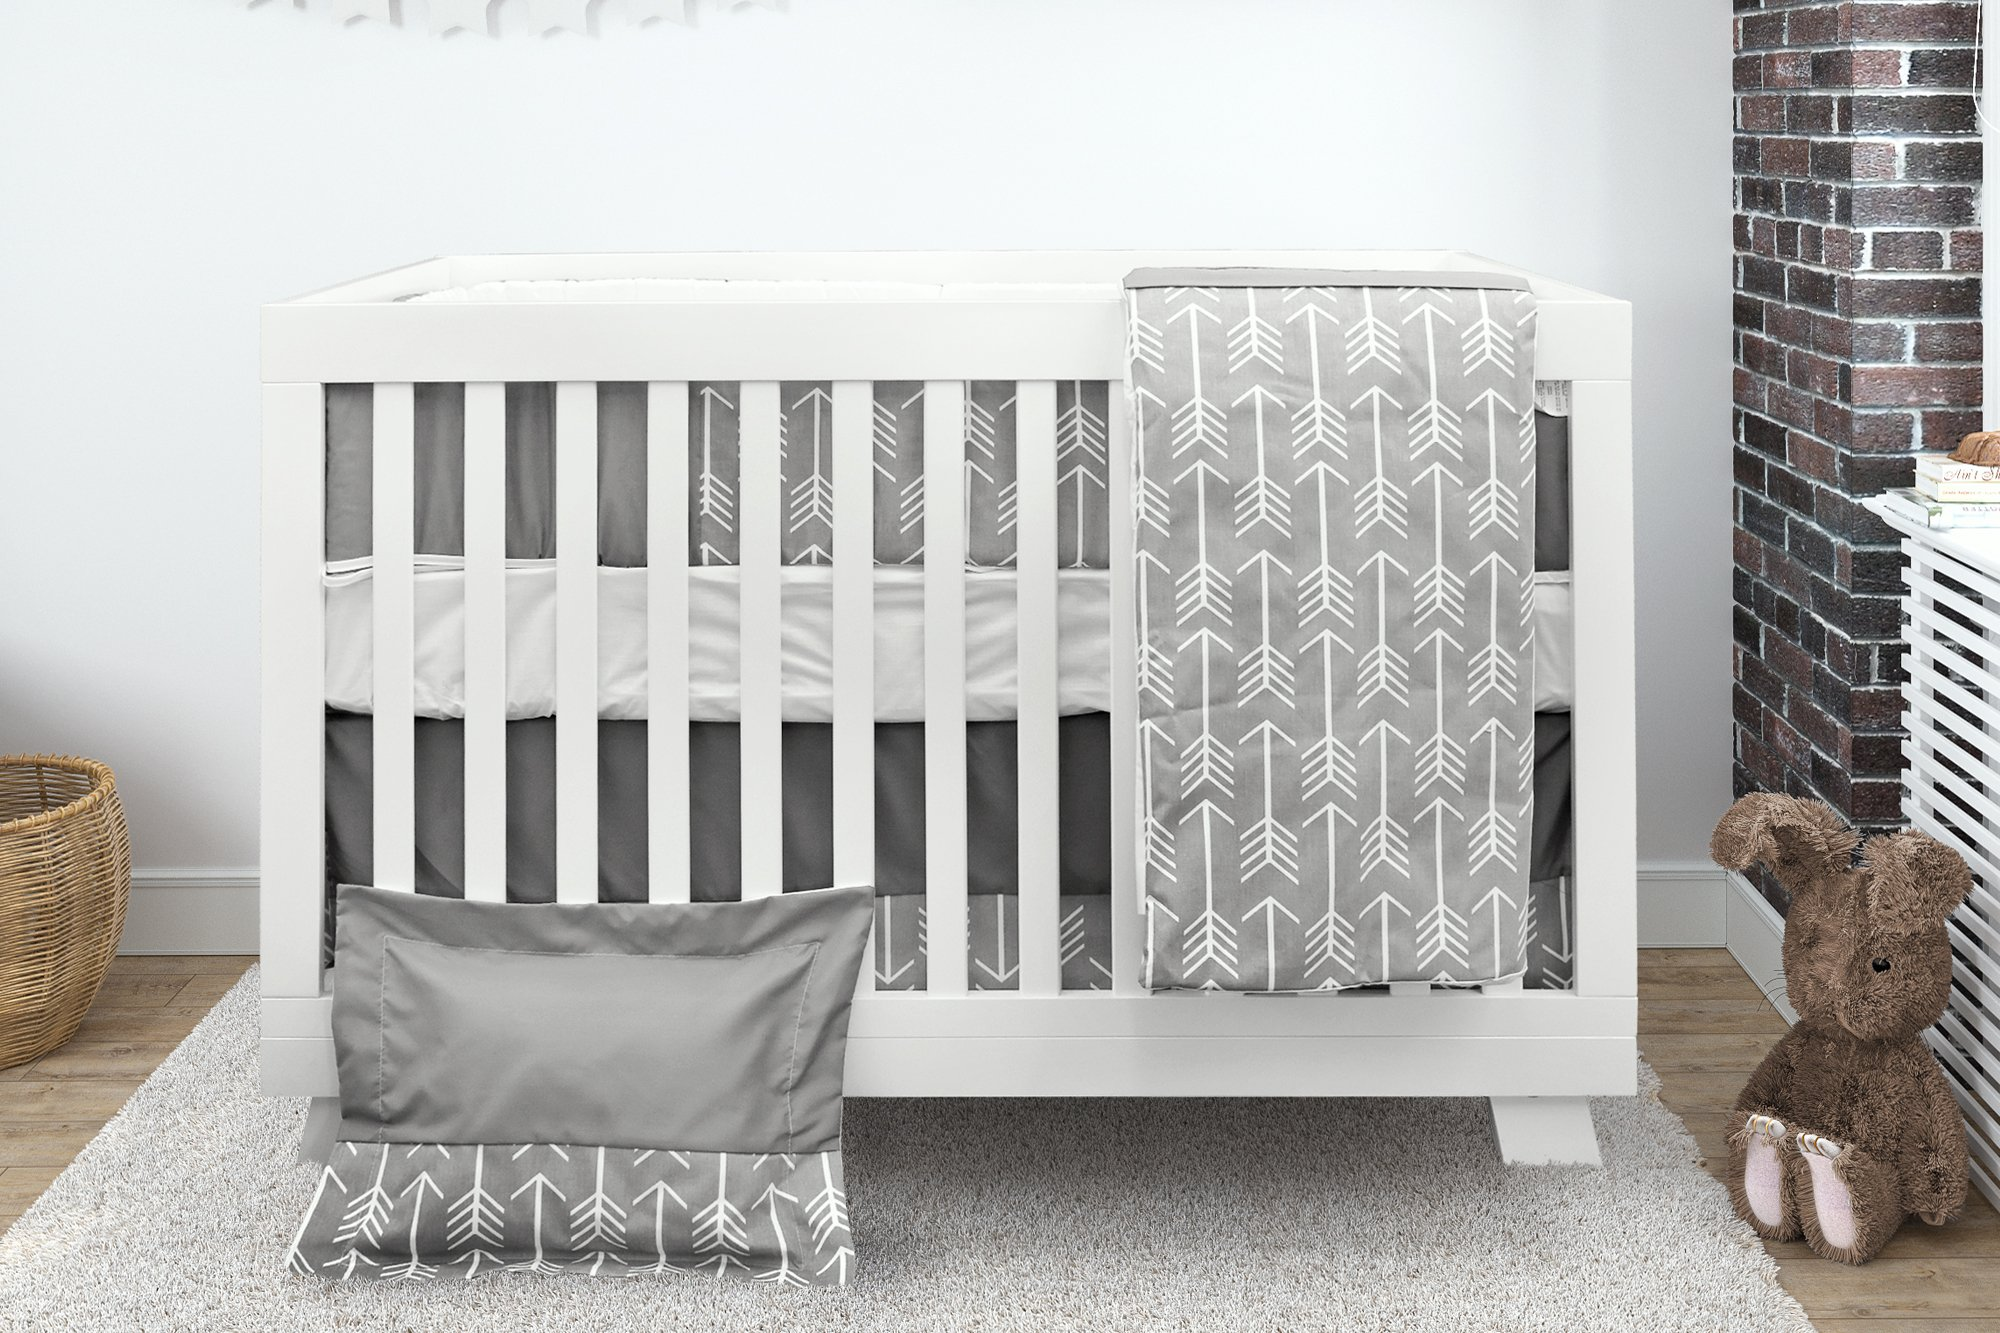 Bebelelo Baby Crib Bedding 7 Piece Set, Gray Arrow Design, Includes Fitted Sheet, Crib Comforter, Comforter Cover, Skirt, Bumper, Pillow Cover and Pillow, Perfect for Baby Girls and Boys by Bebelelo